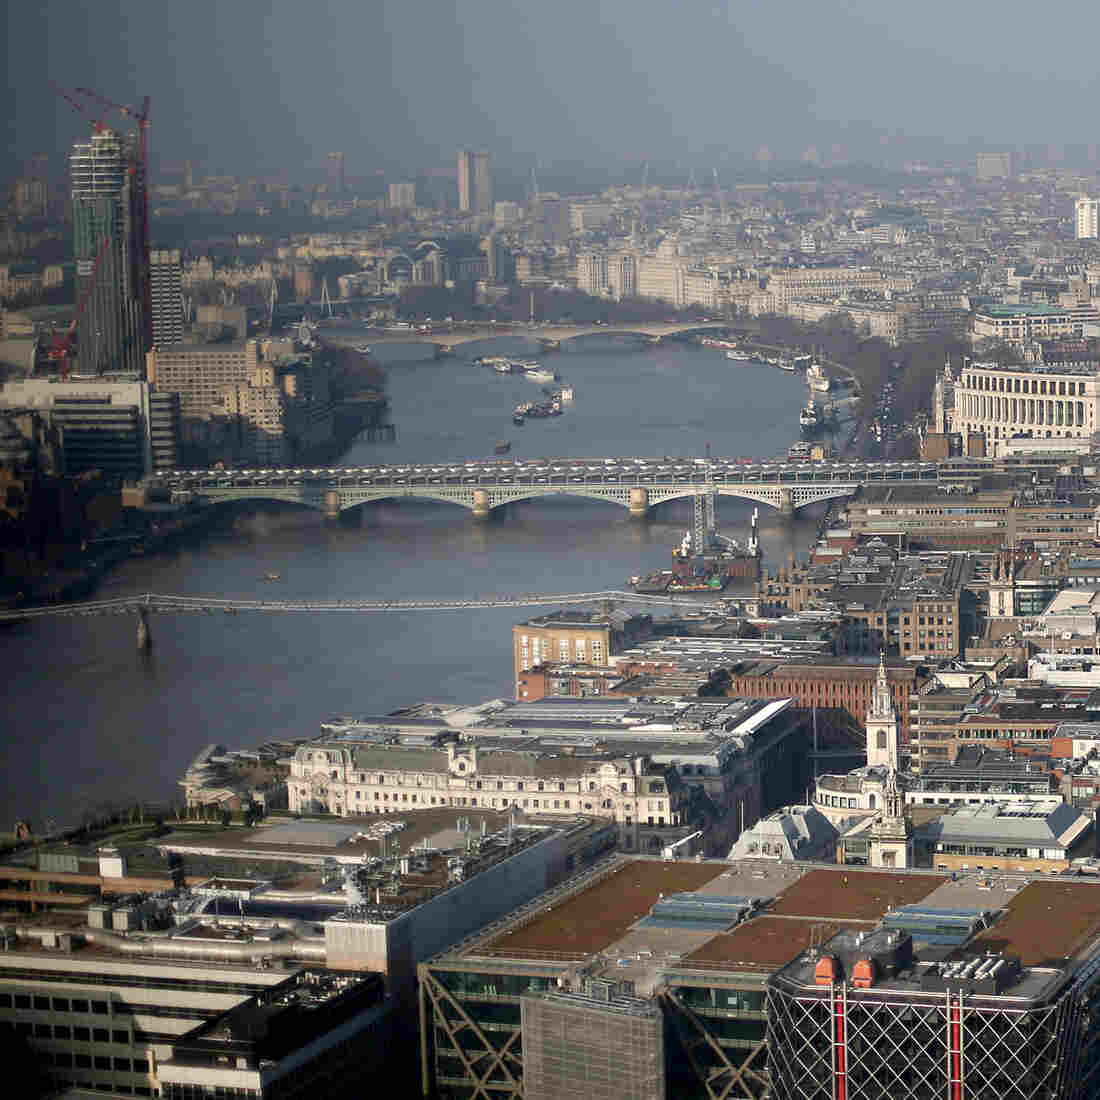 The view west from London's newest skyscraper looks over the River Thames and St. Paul's Cathedral. Russians have flocked to the English property and banking sectors as the economy crumbles back home.